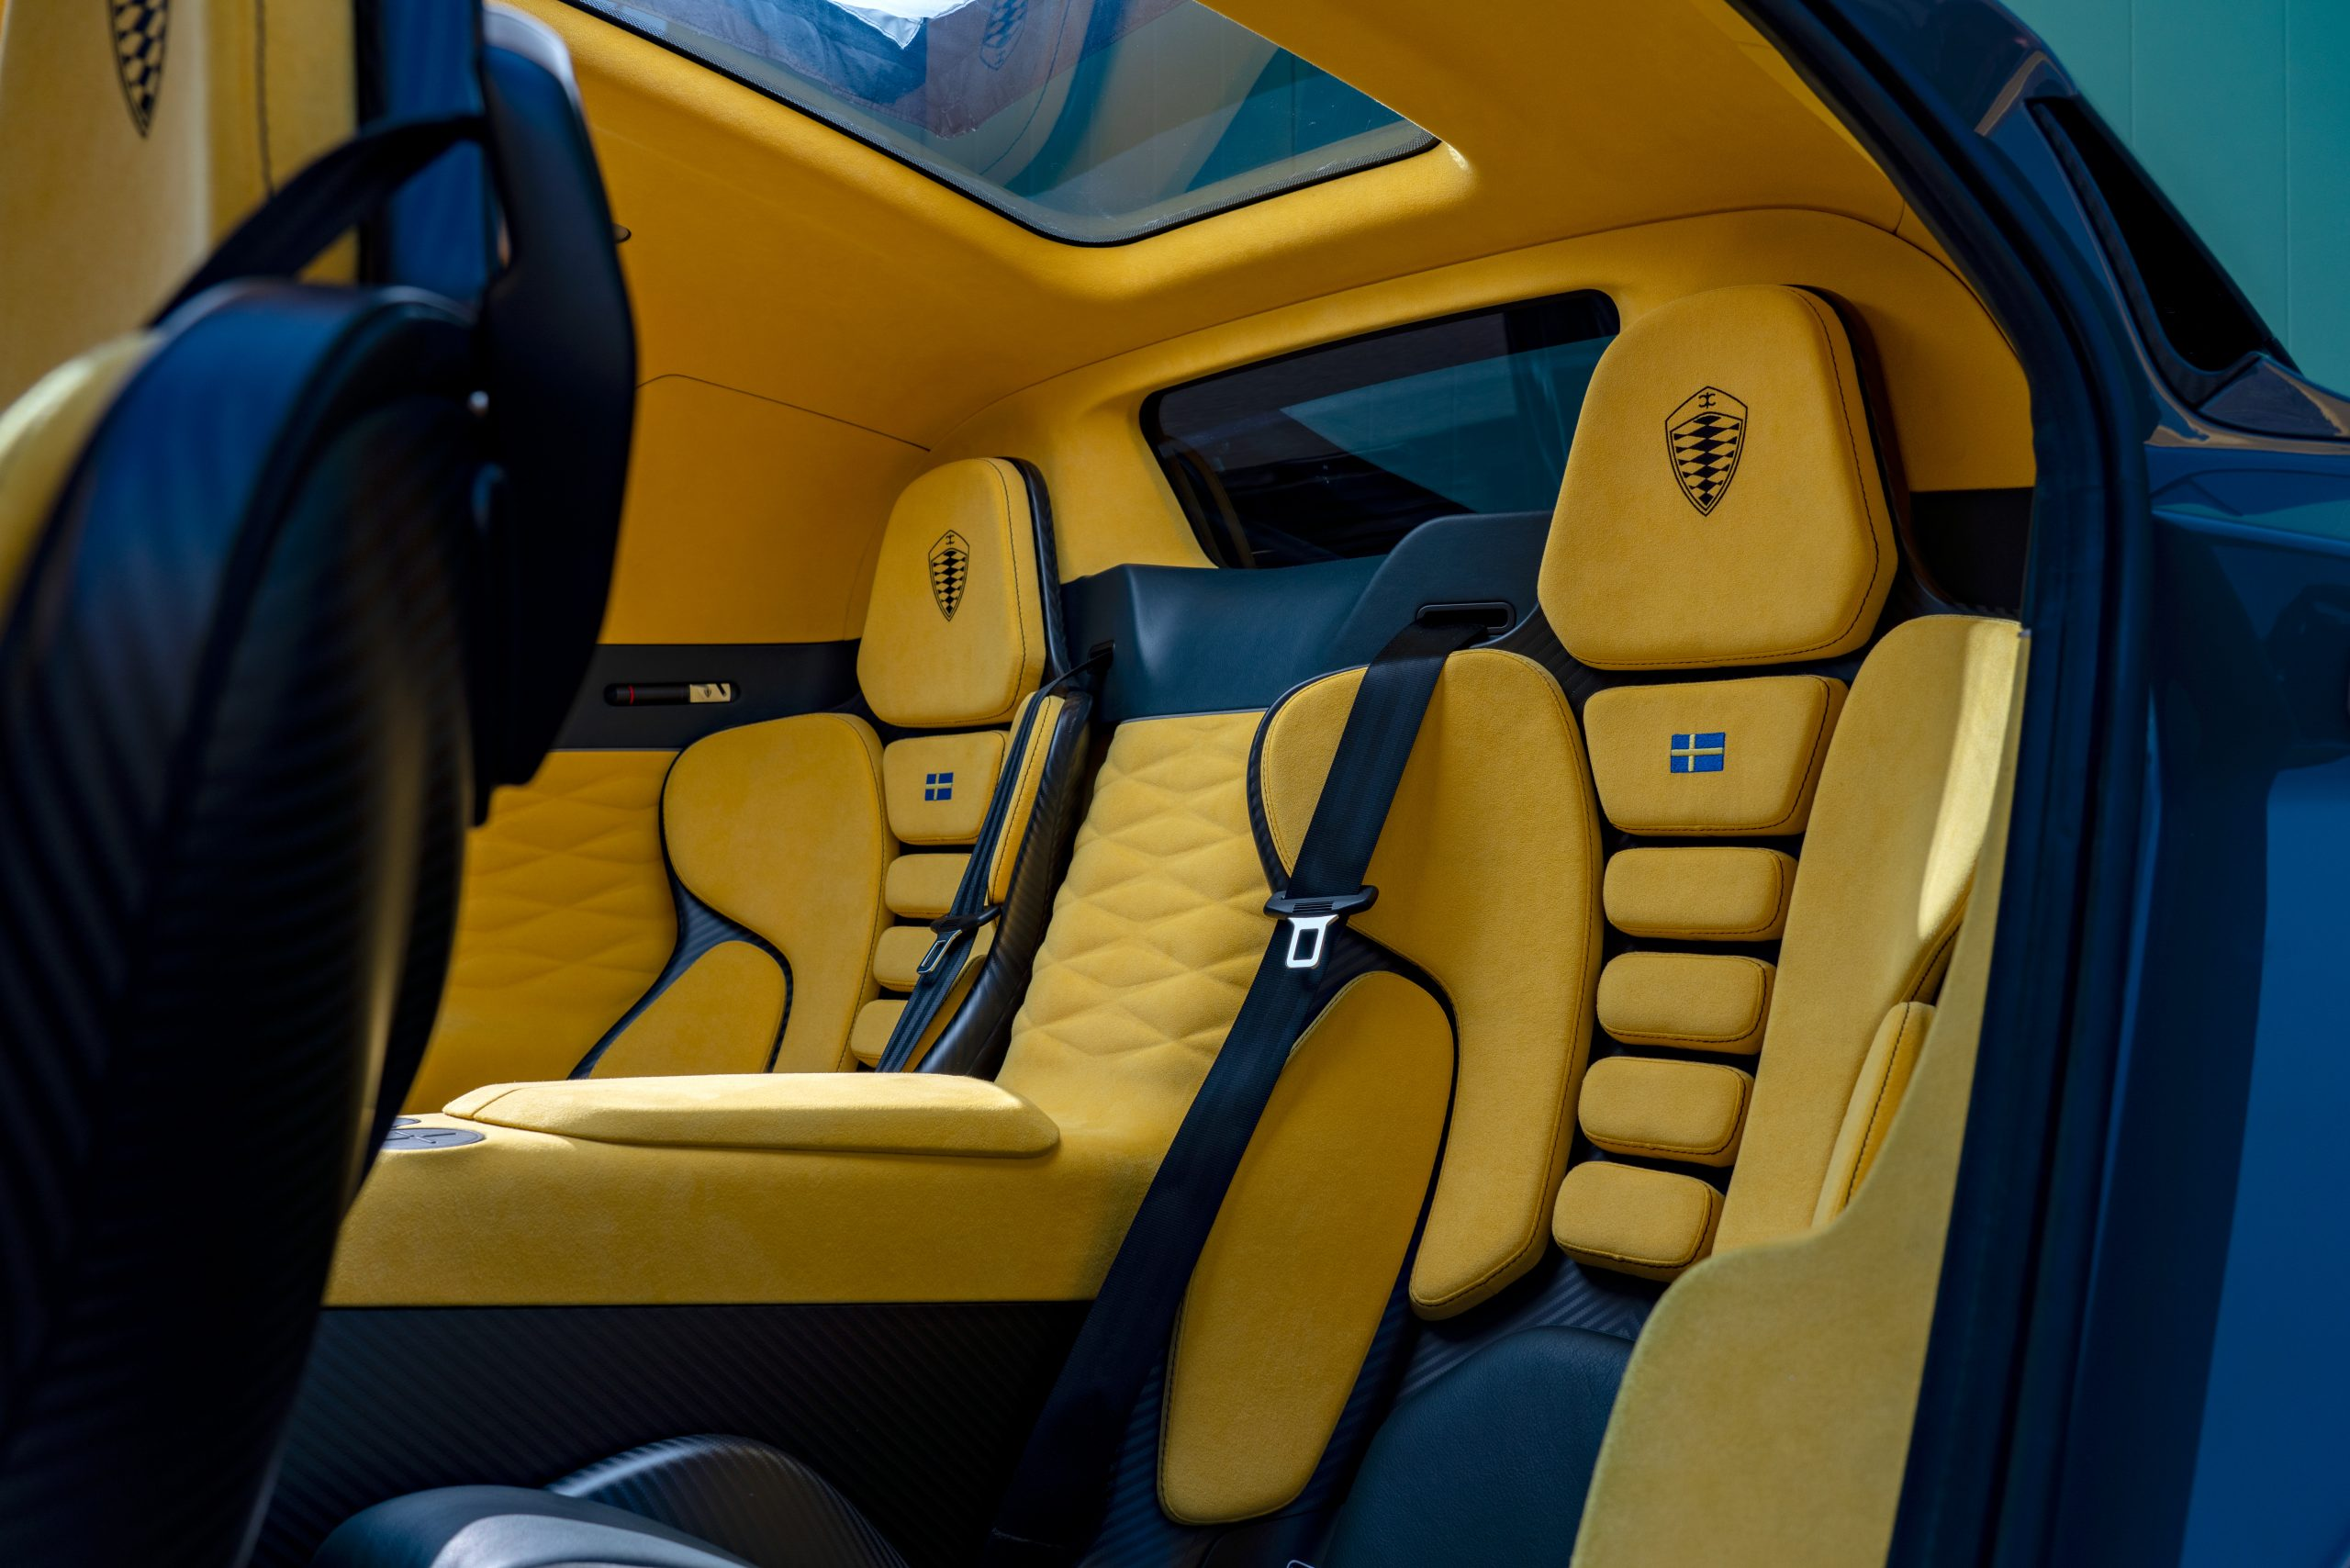 Koenigsegg Gemera seat yellow rear